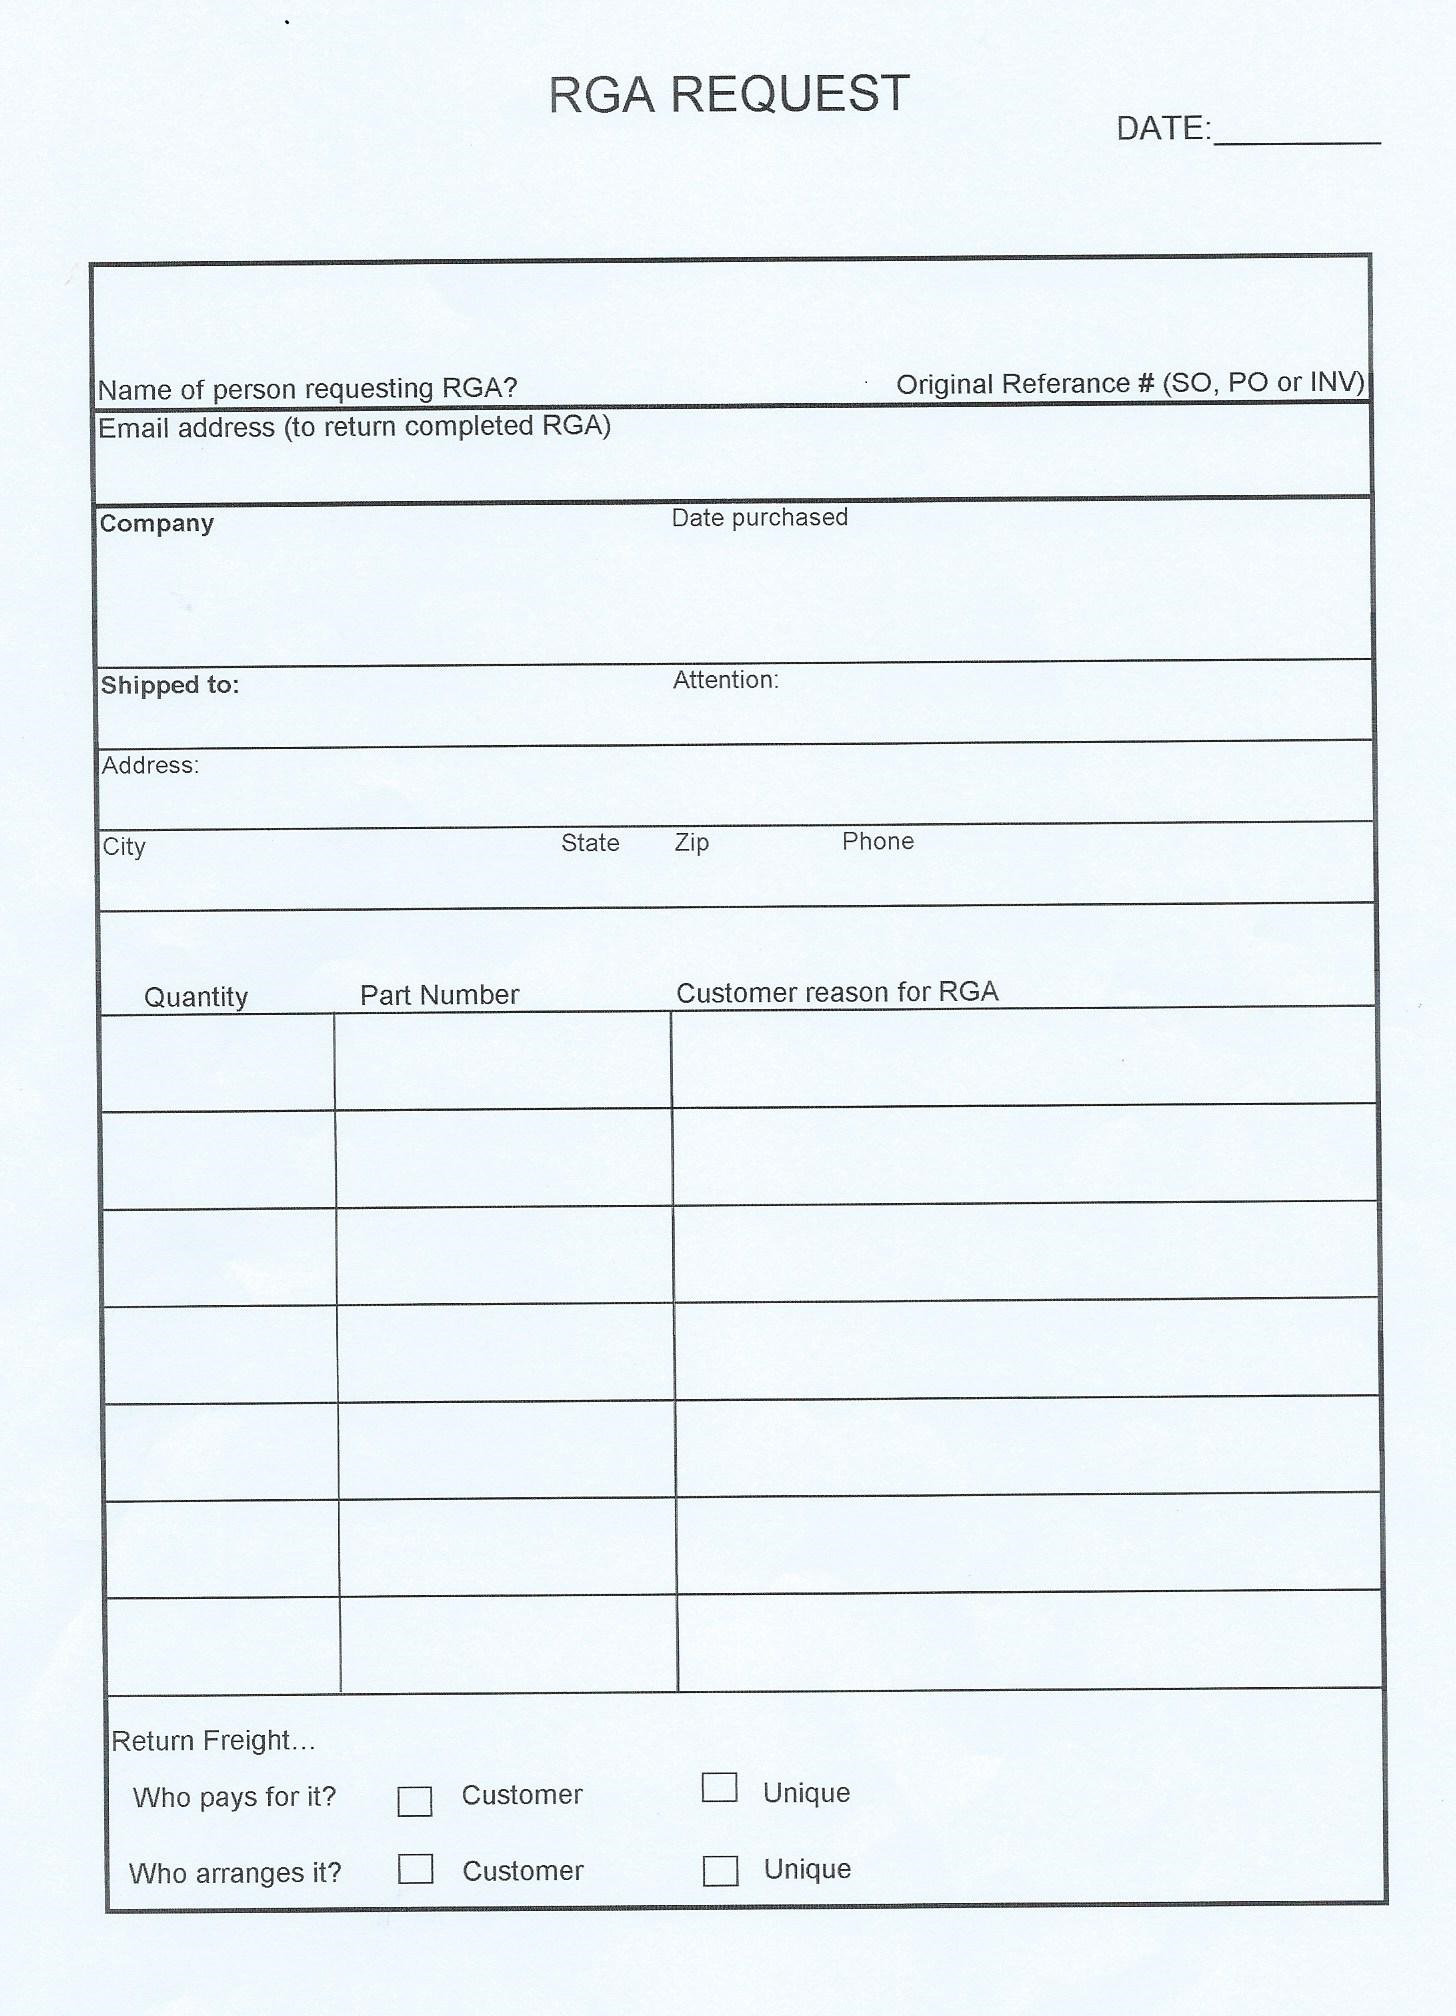 Warranty request template driverlayer search engine for Rma request form template